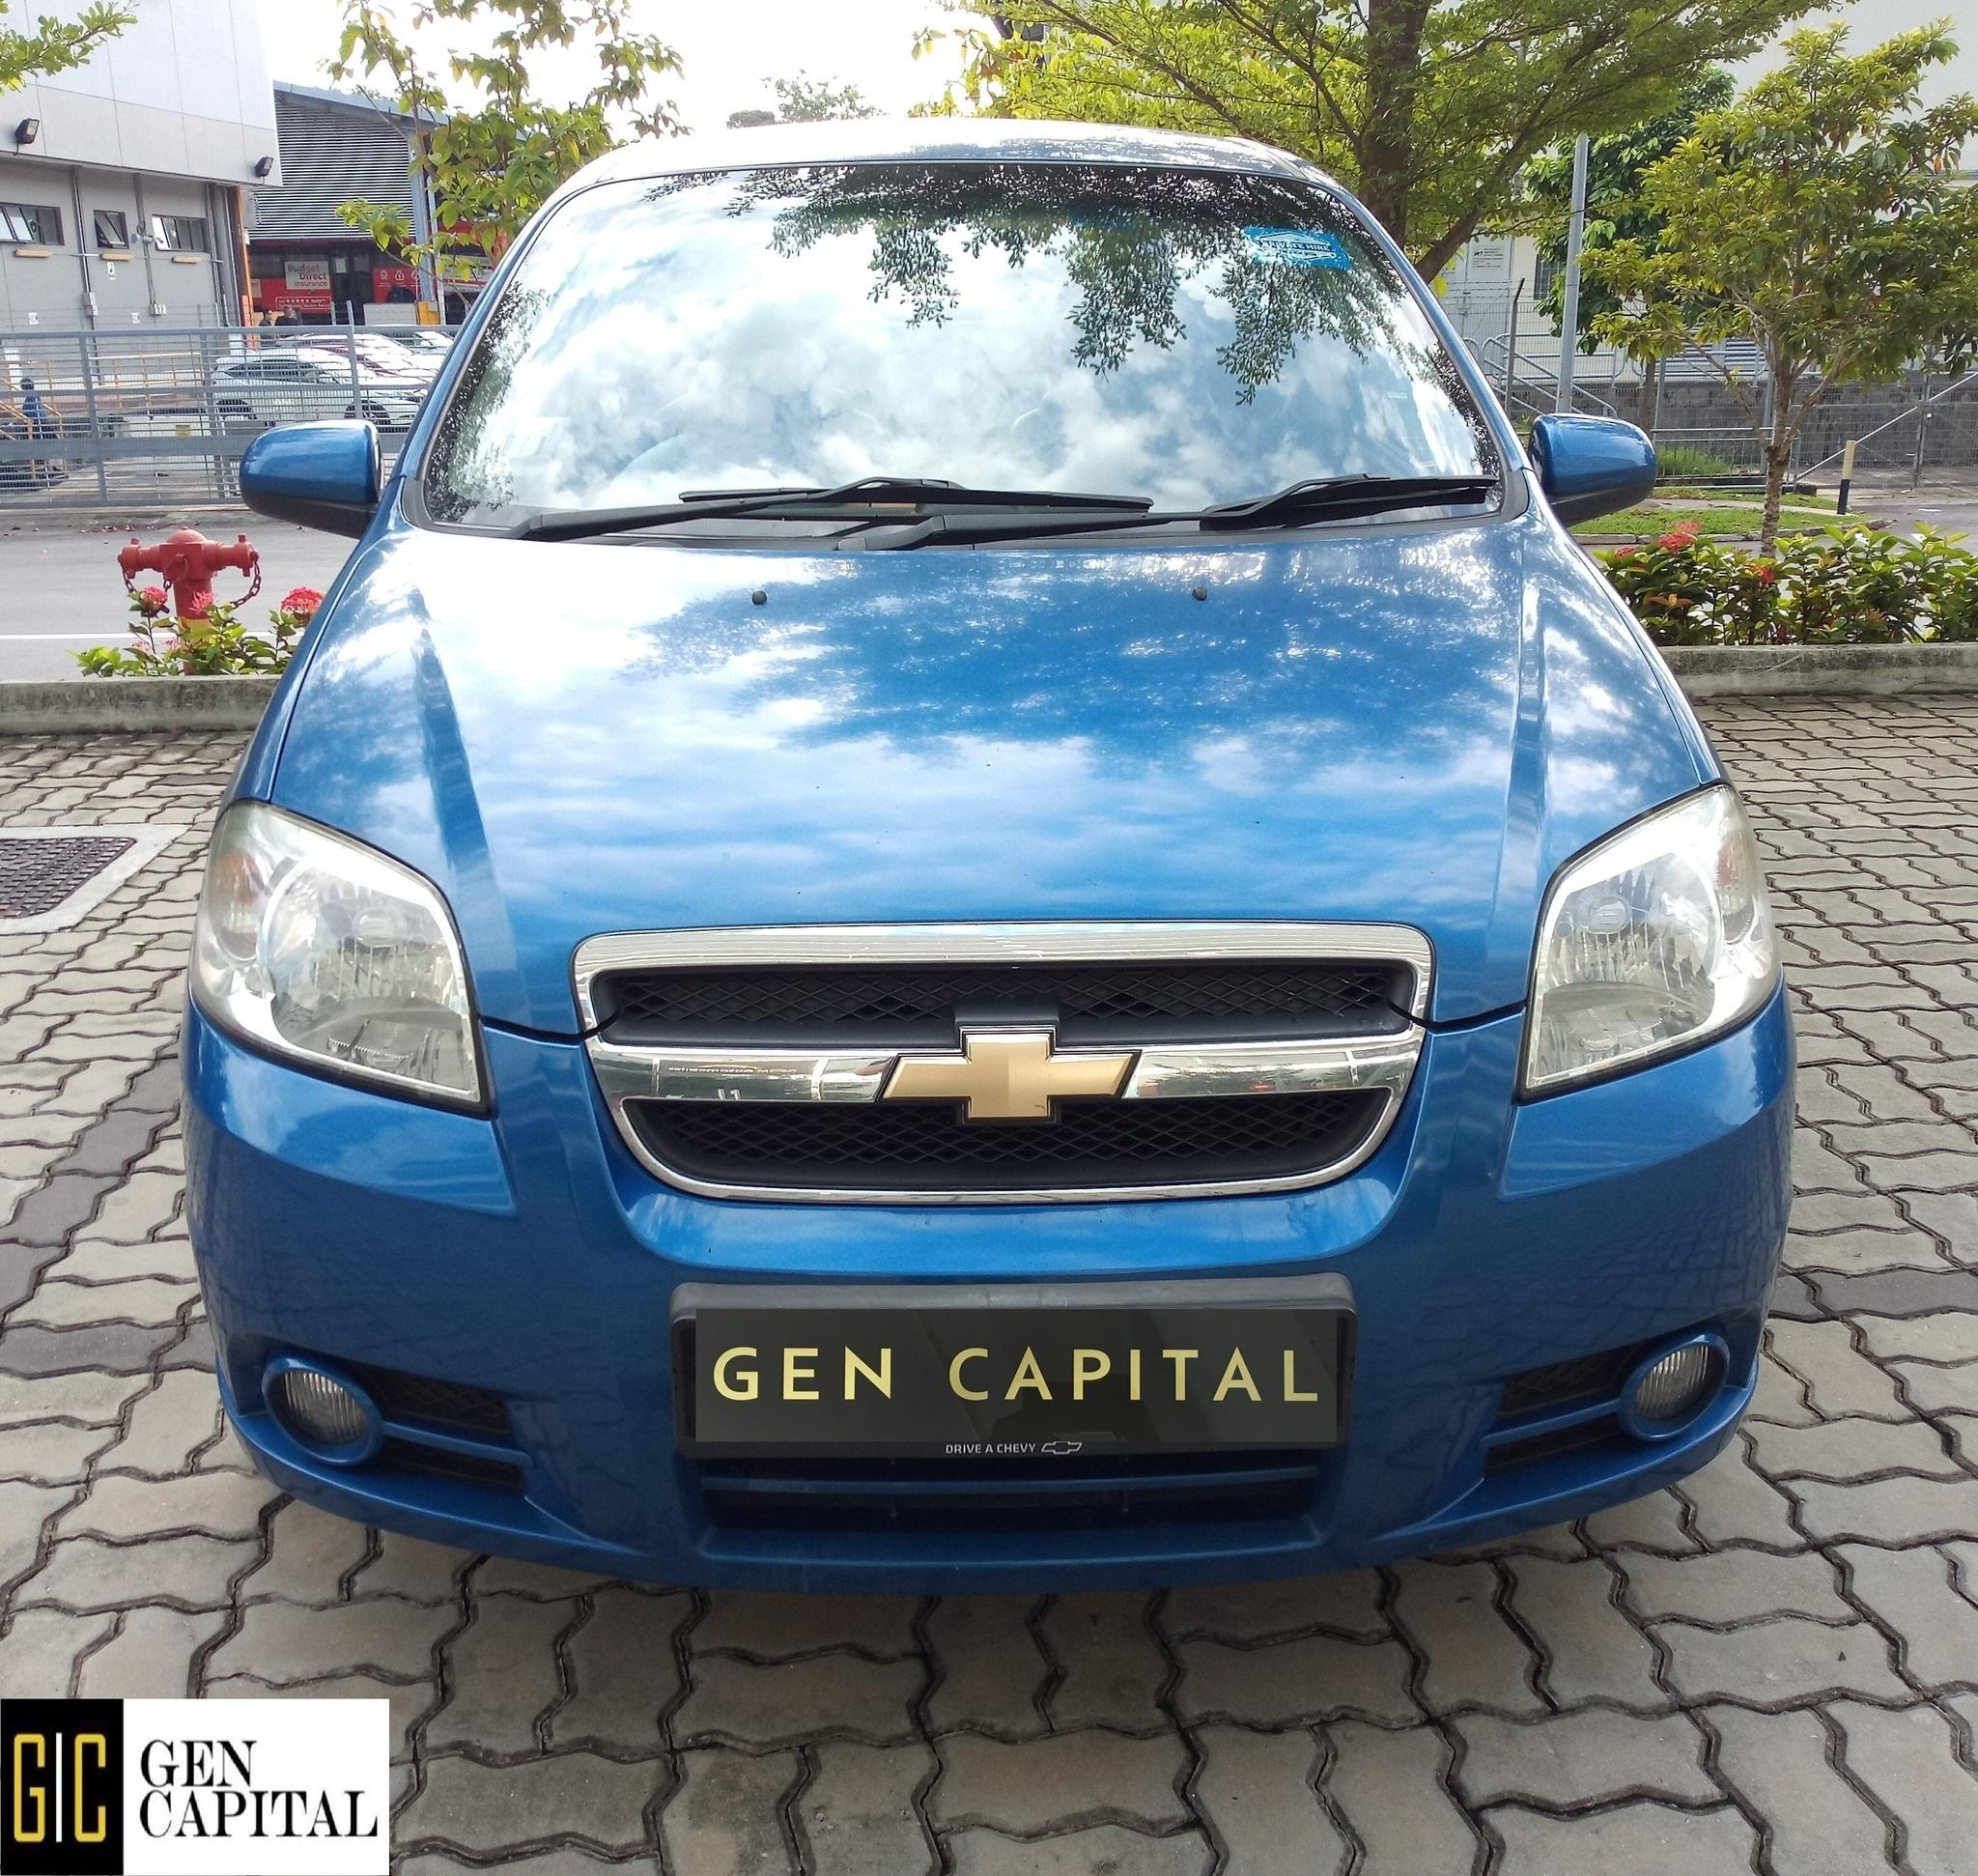 Chevrolet Aveo 1.4A Sedan Comfortable Car at Low Rental Rate